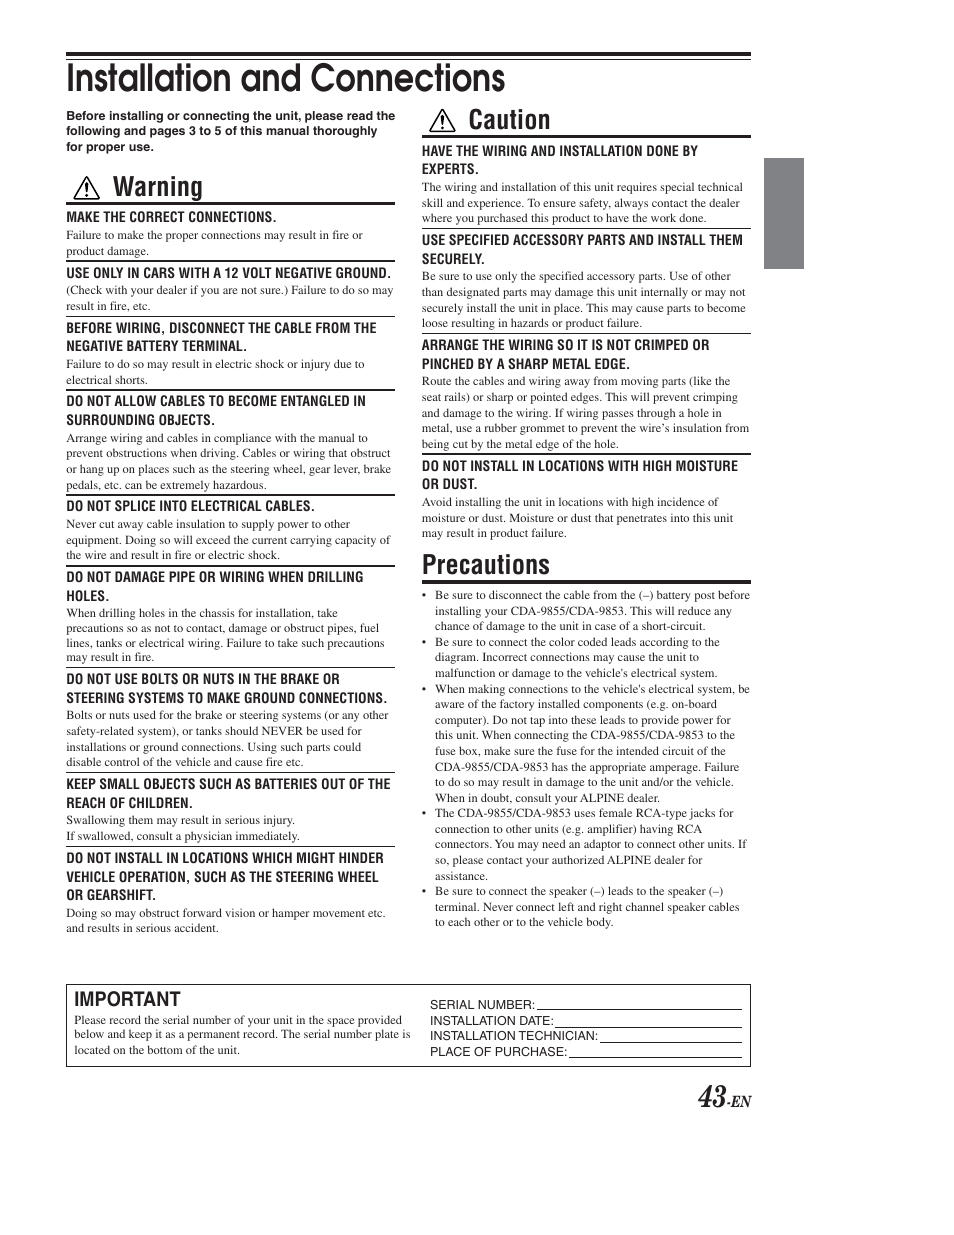 Installation & connections, Installation and connections, Warning | Alpine  CDA-9853 User Manual | Page 44 / 55